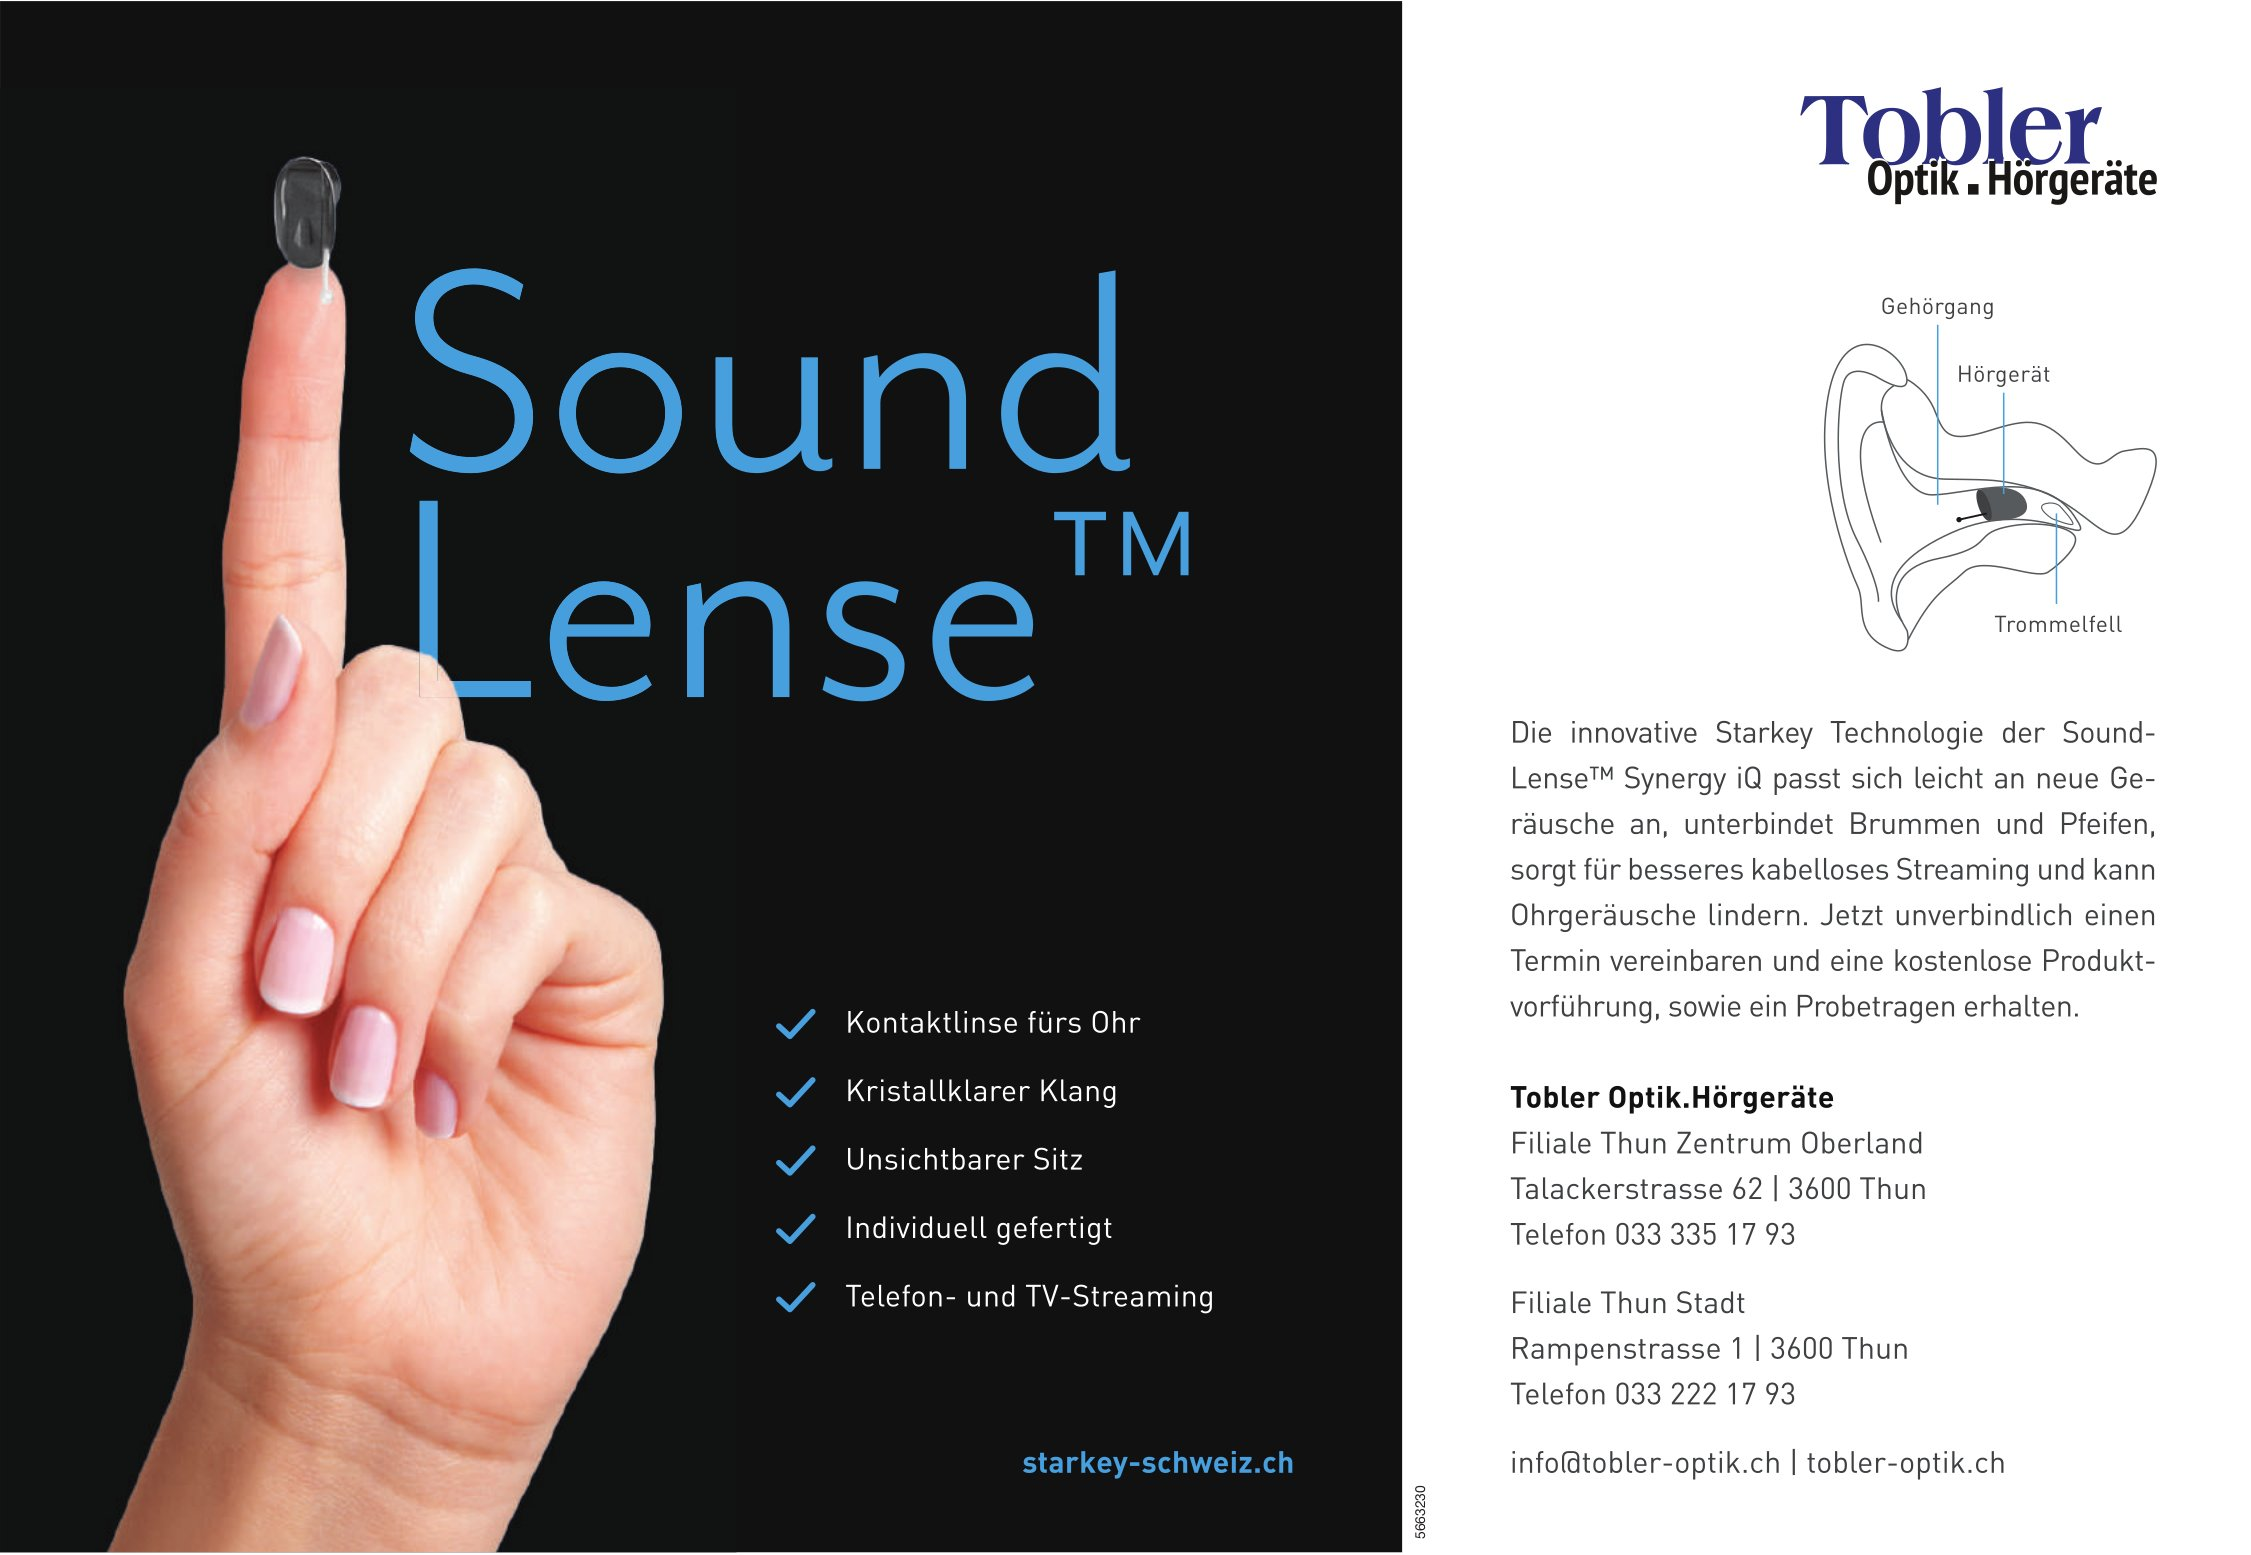 Sound Lense TM Synergy iQ - Tobler Optik.Hörgeräte, Thun